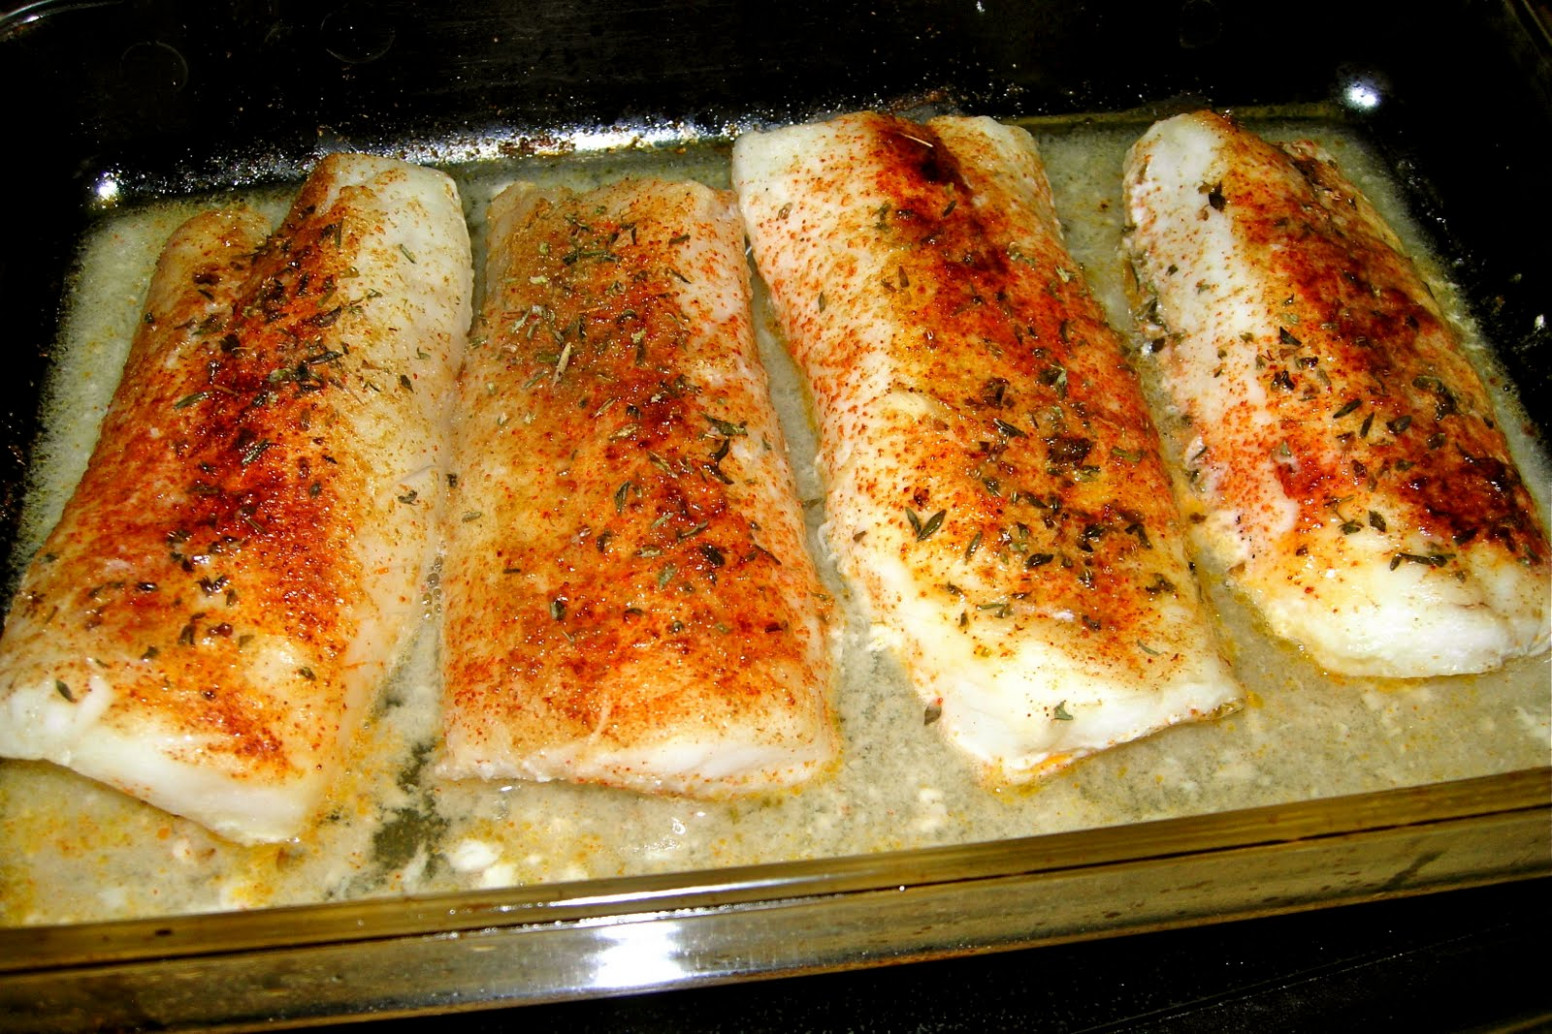 CFSCC Presents: EAT THIS!: Simple Baked Cod